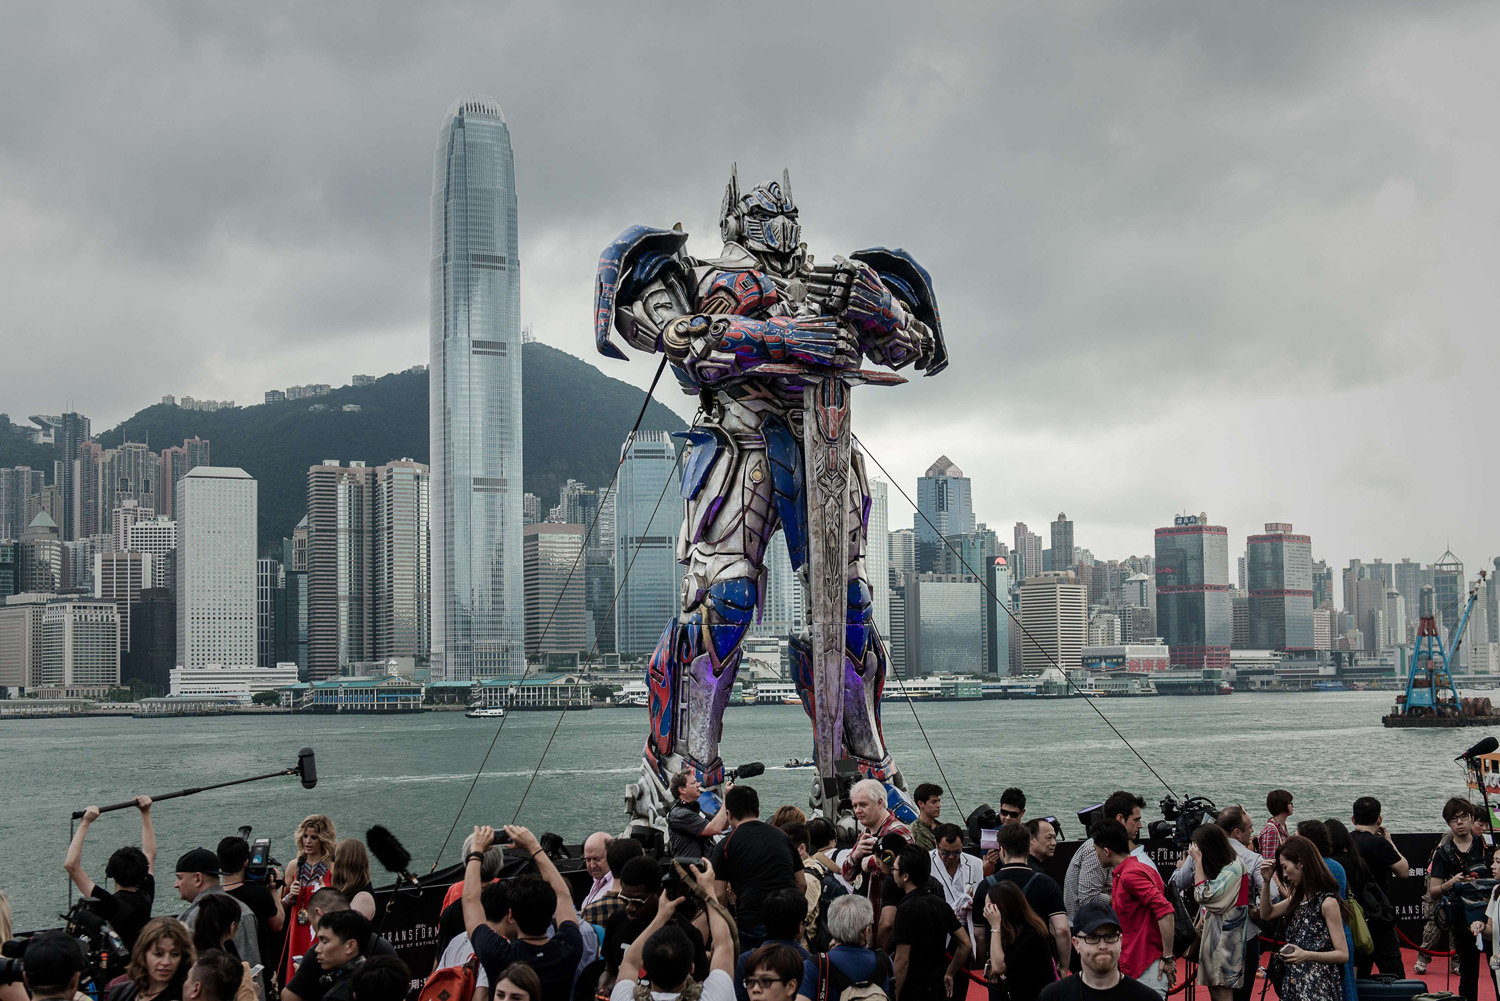 A 20 foot-tall Optimus Prime figure is surrounded by journalists before the world premiere of Hollywood movie Transformers 4 in Hong Kong on June 19, 2014.